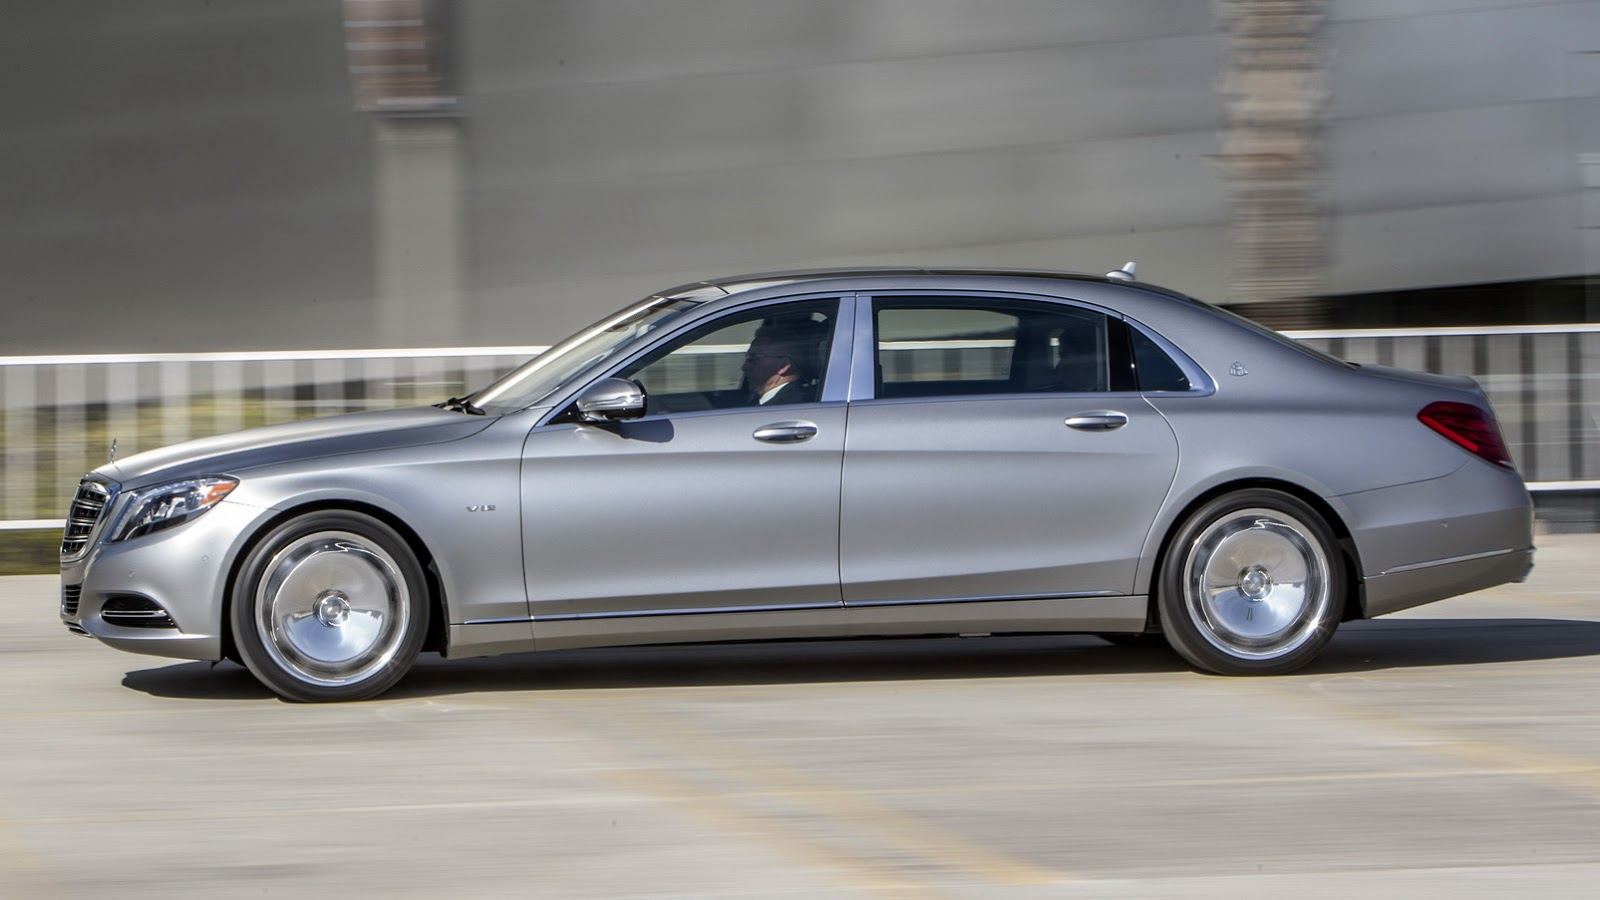 Get to Know the 2016 Mercedes-Maybach S600 in 57 New ...